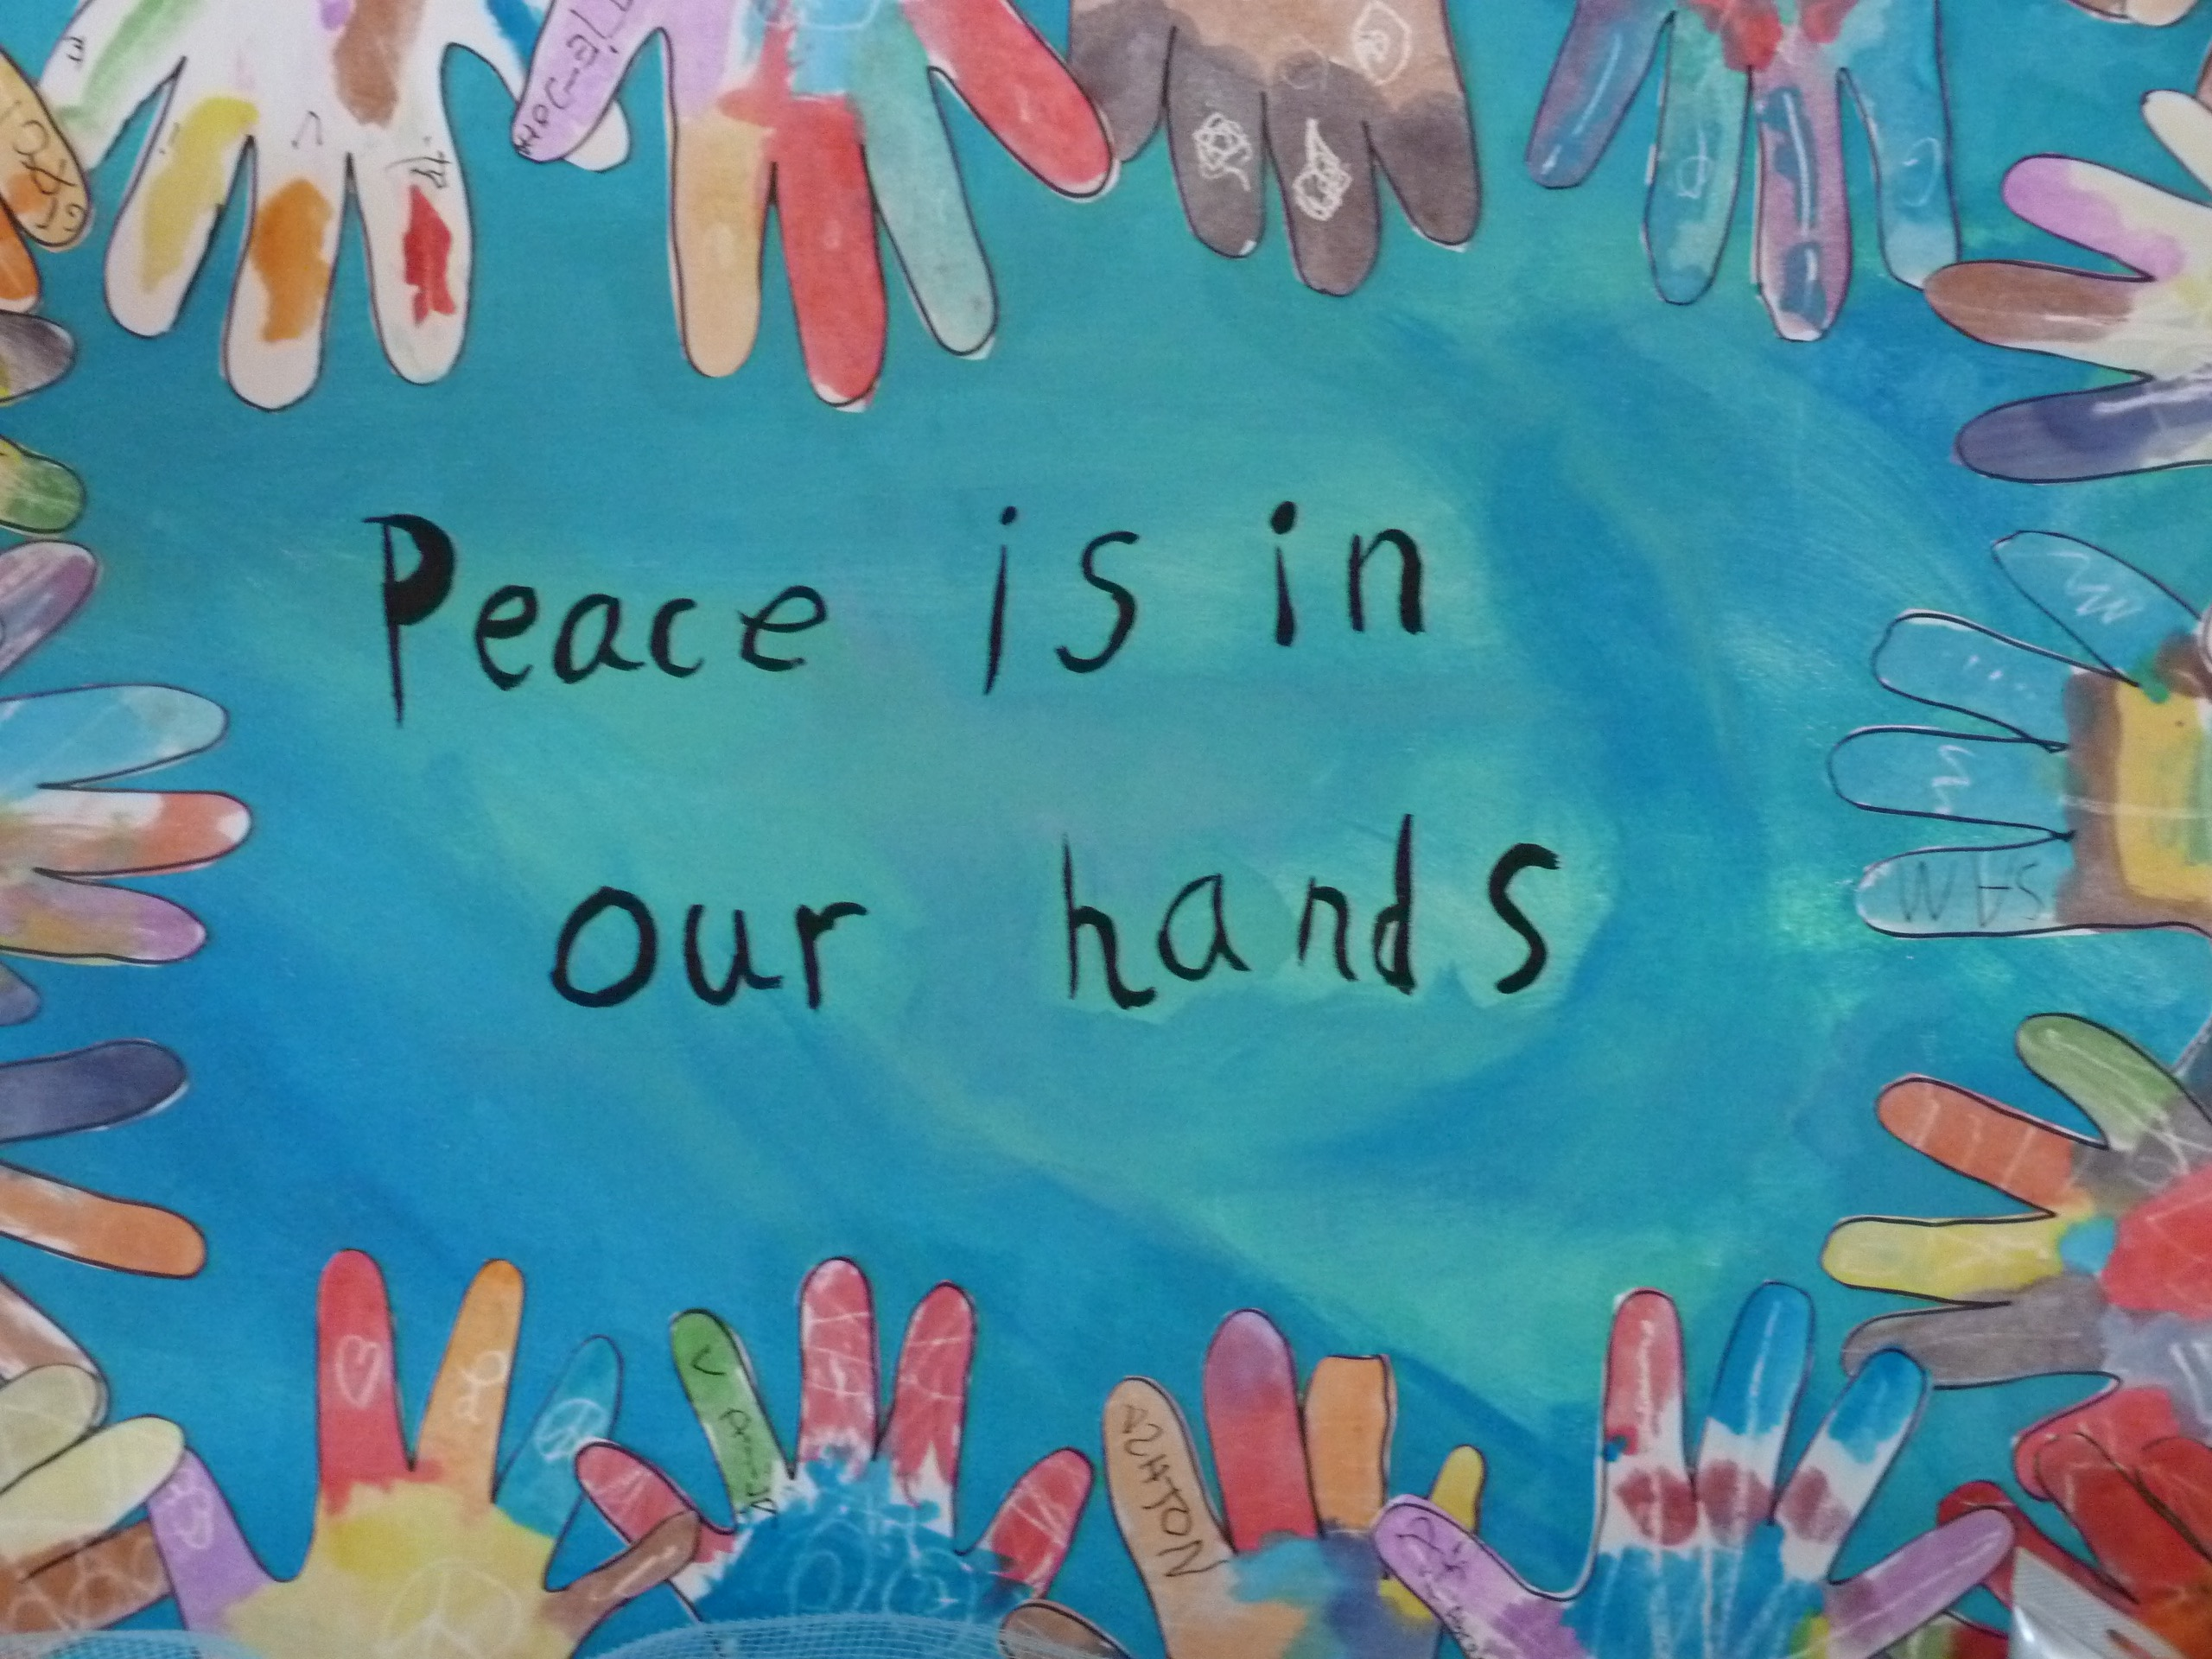 MSP students' art project representing Peace